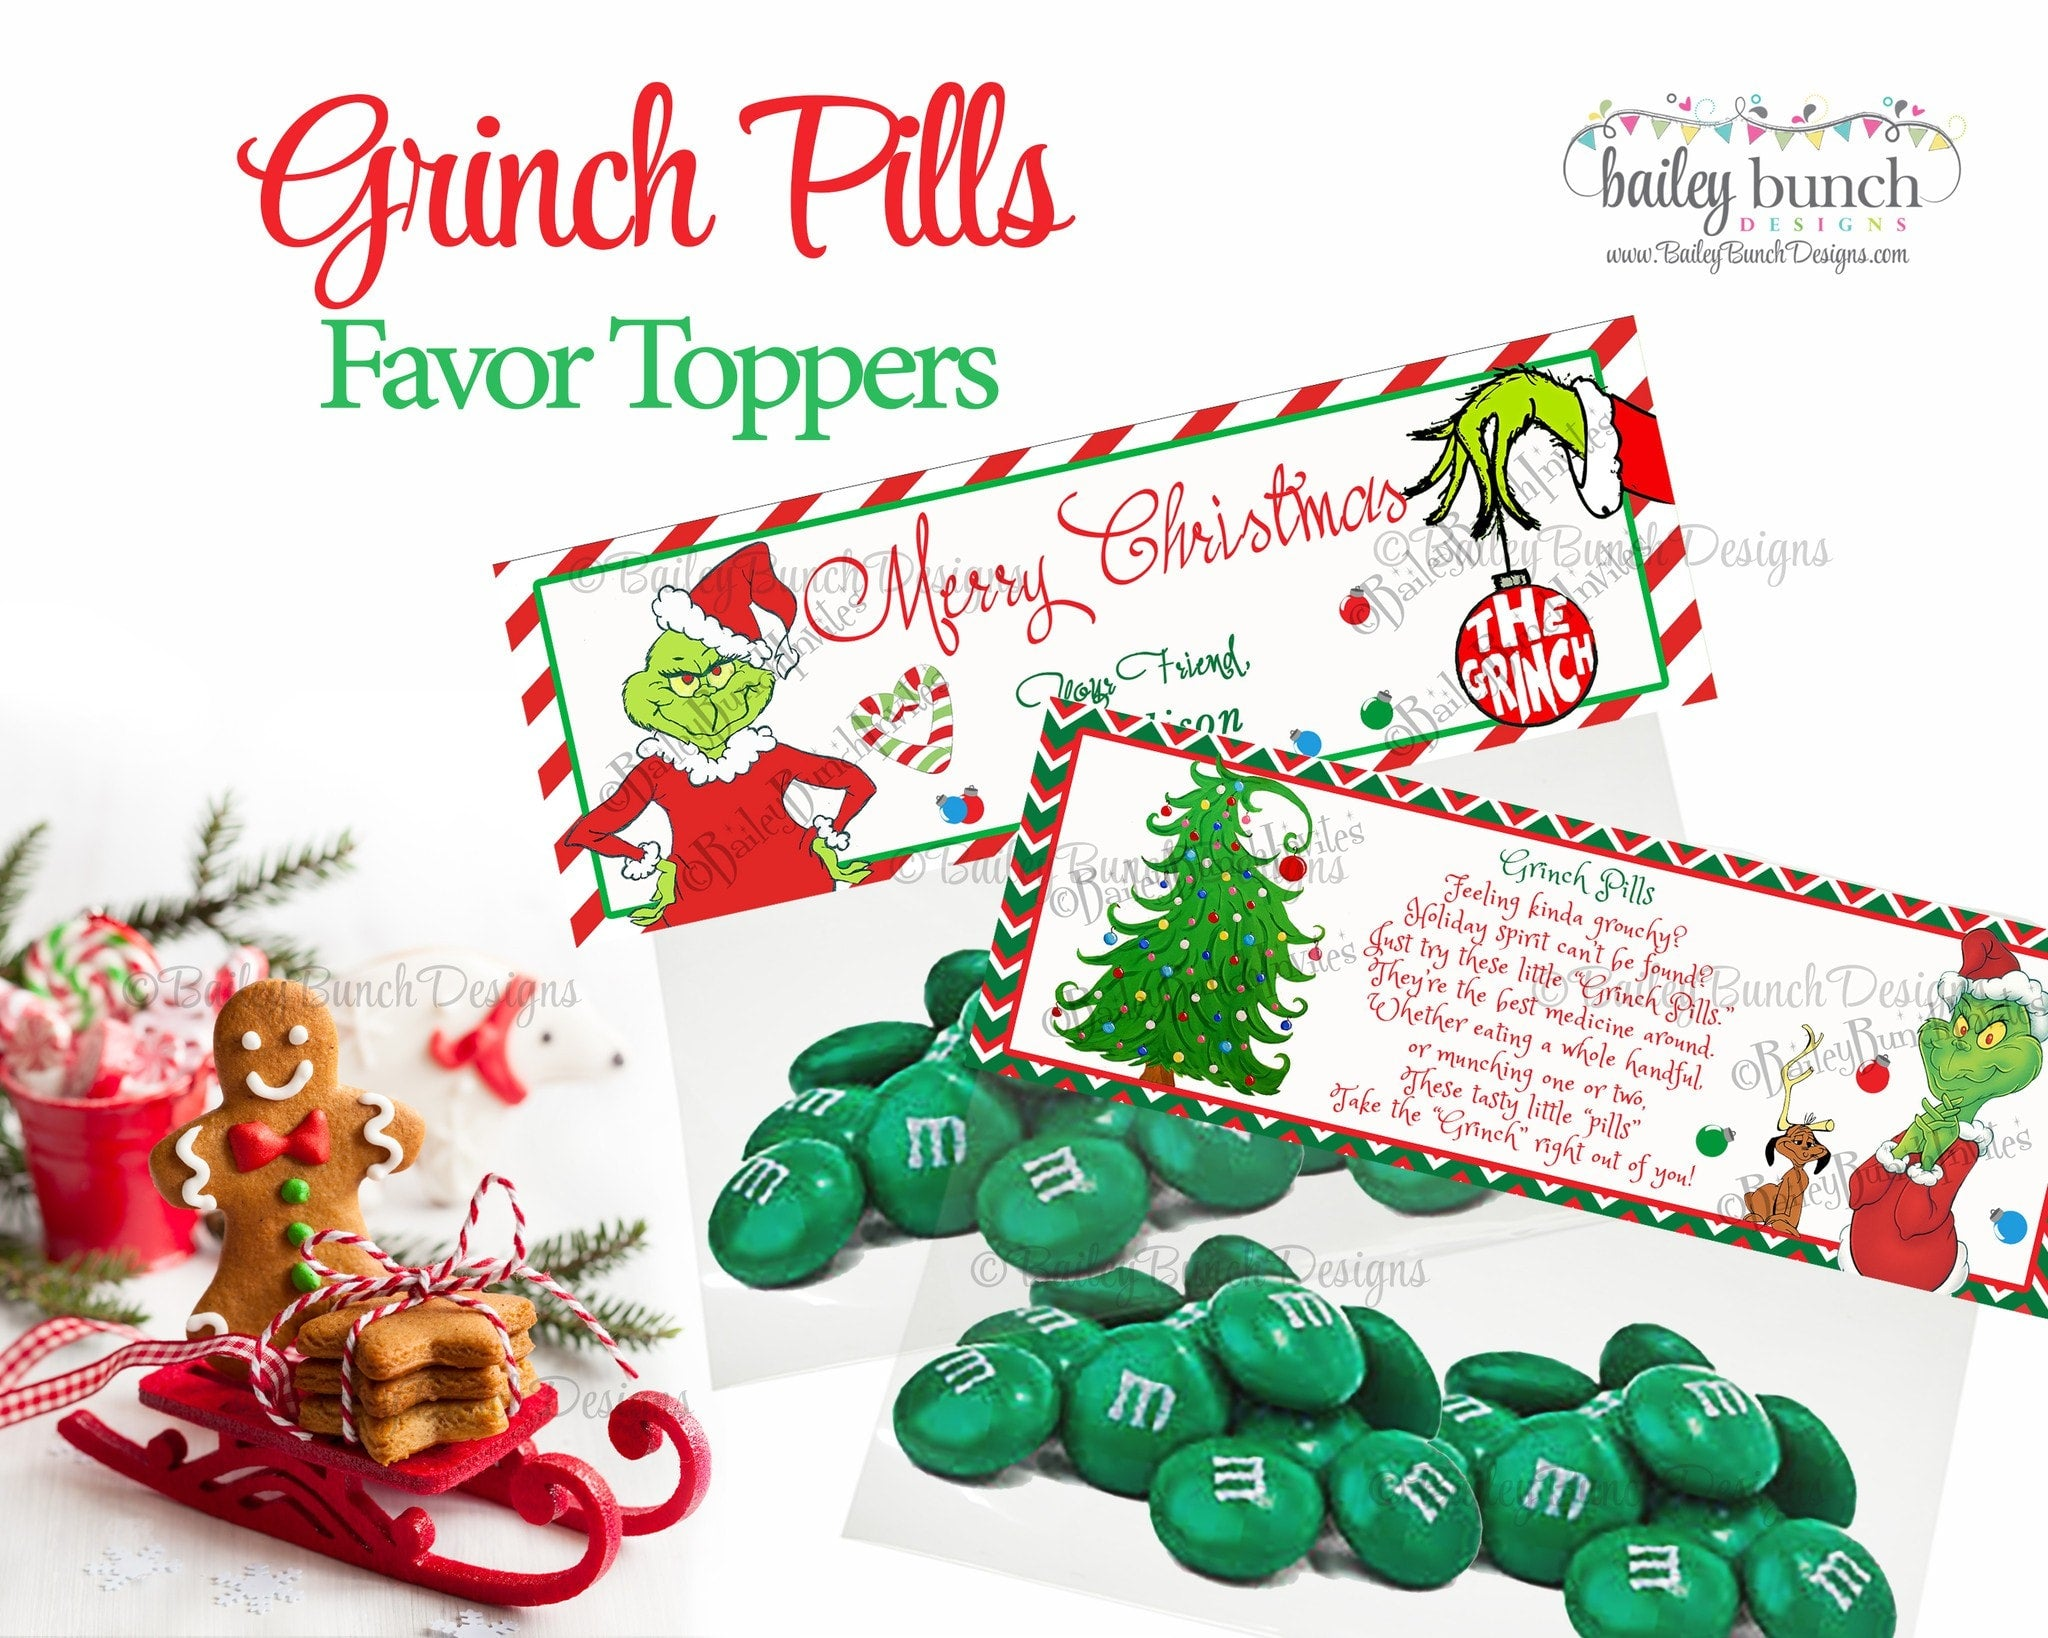 picture relating to Grinch Pills Free Printable referred to as Grinch Capsules Deal with Baggage, Xmas Toppers GRINCH0520